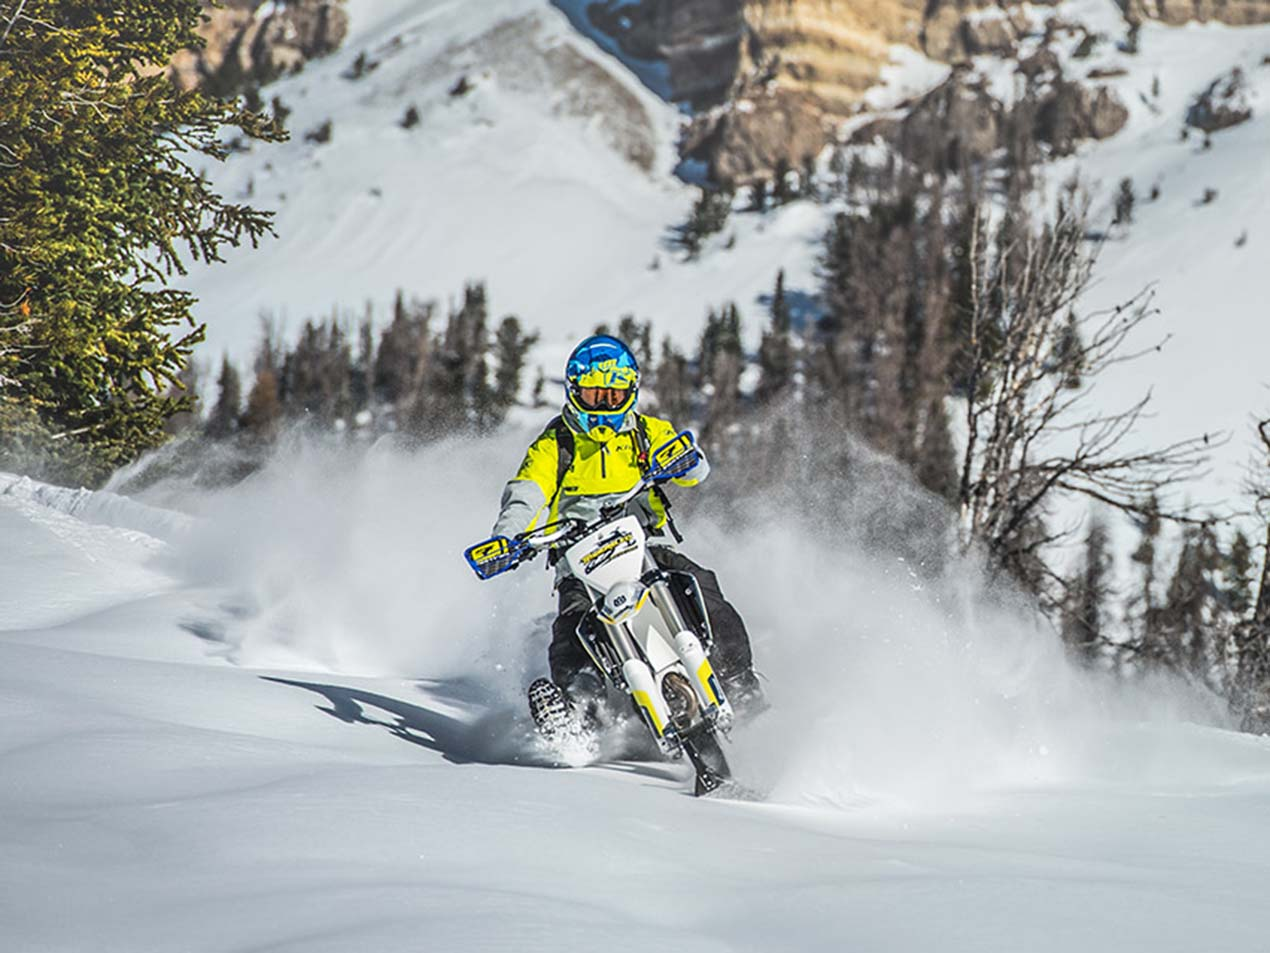 Timbersled Snow Bikes Look Like Serious Fun